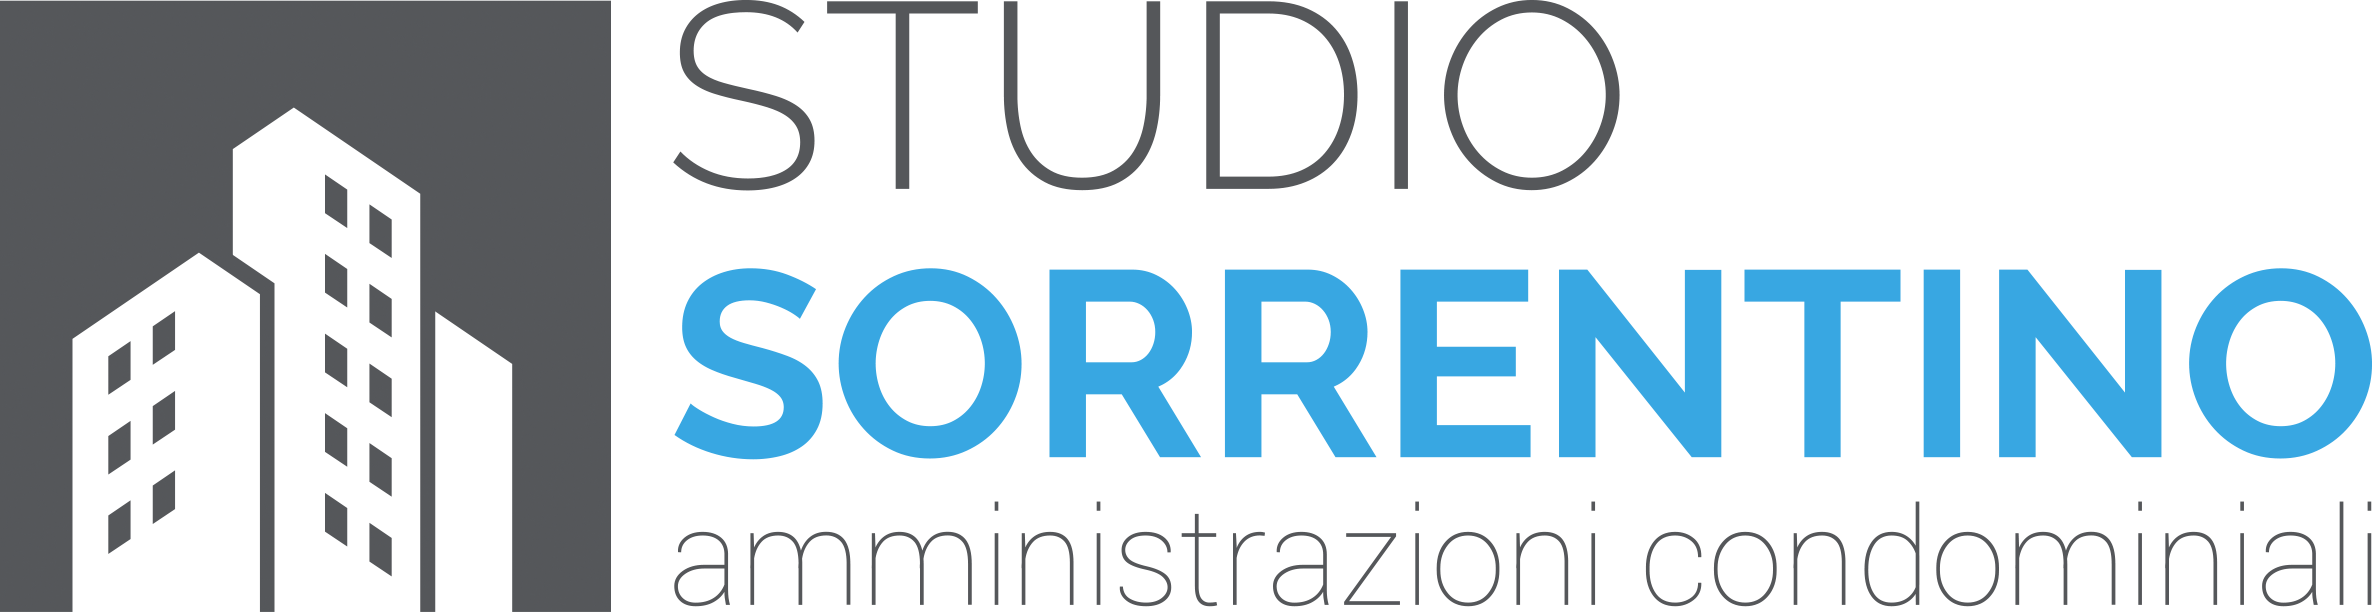 Studio Sorrentino